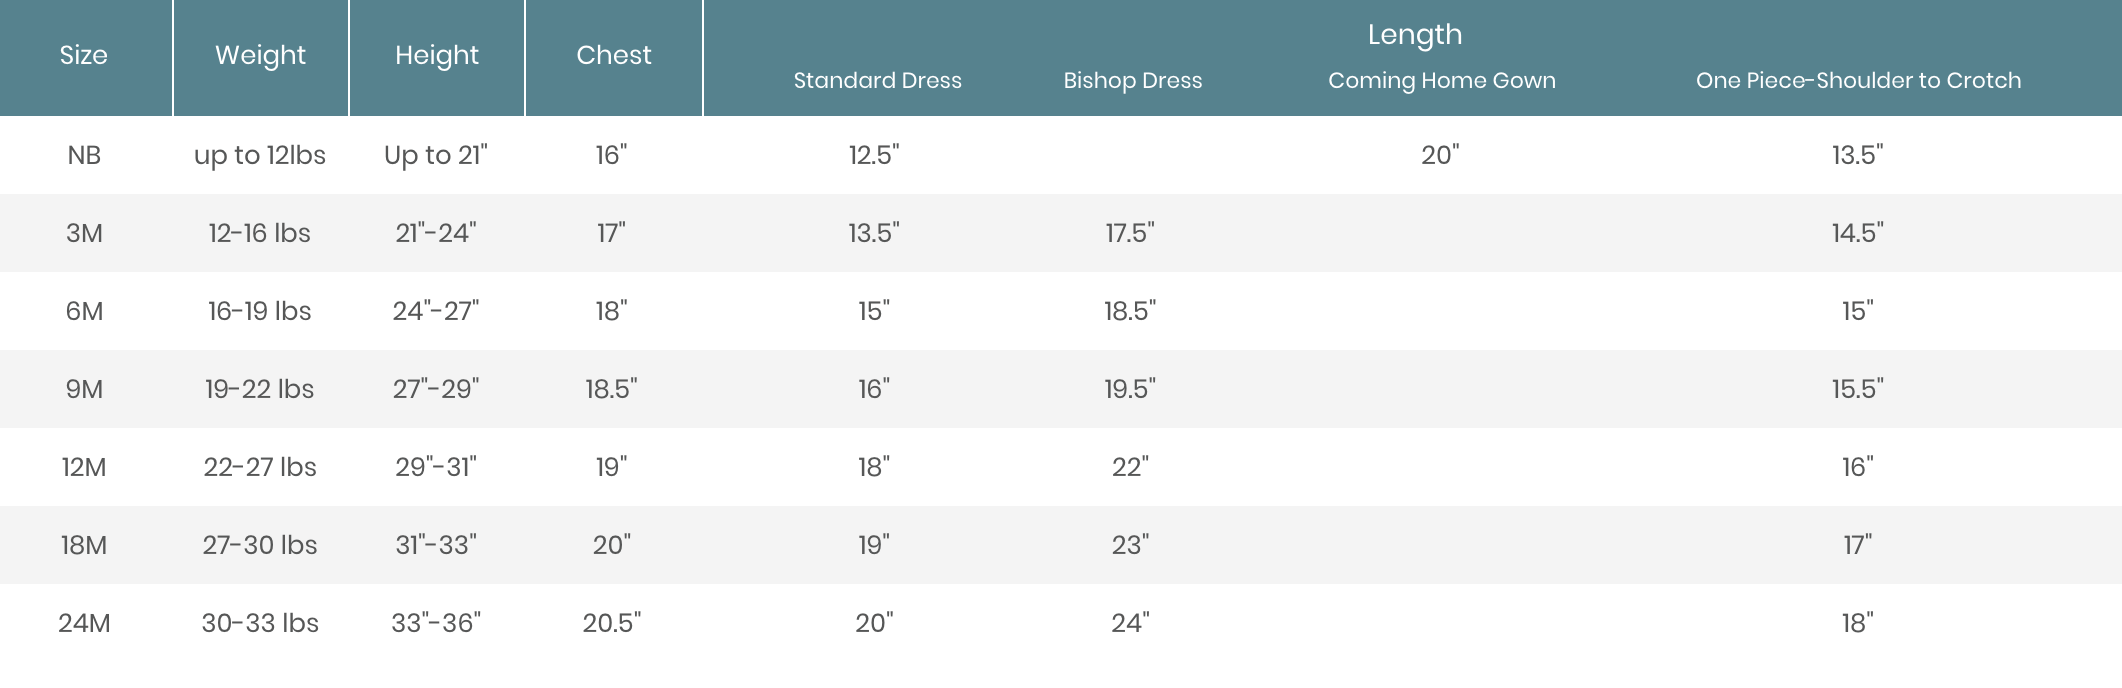 coming-home-gowns-sizing-chart.png